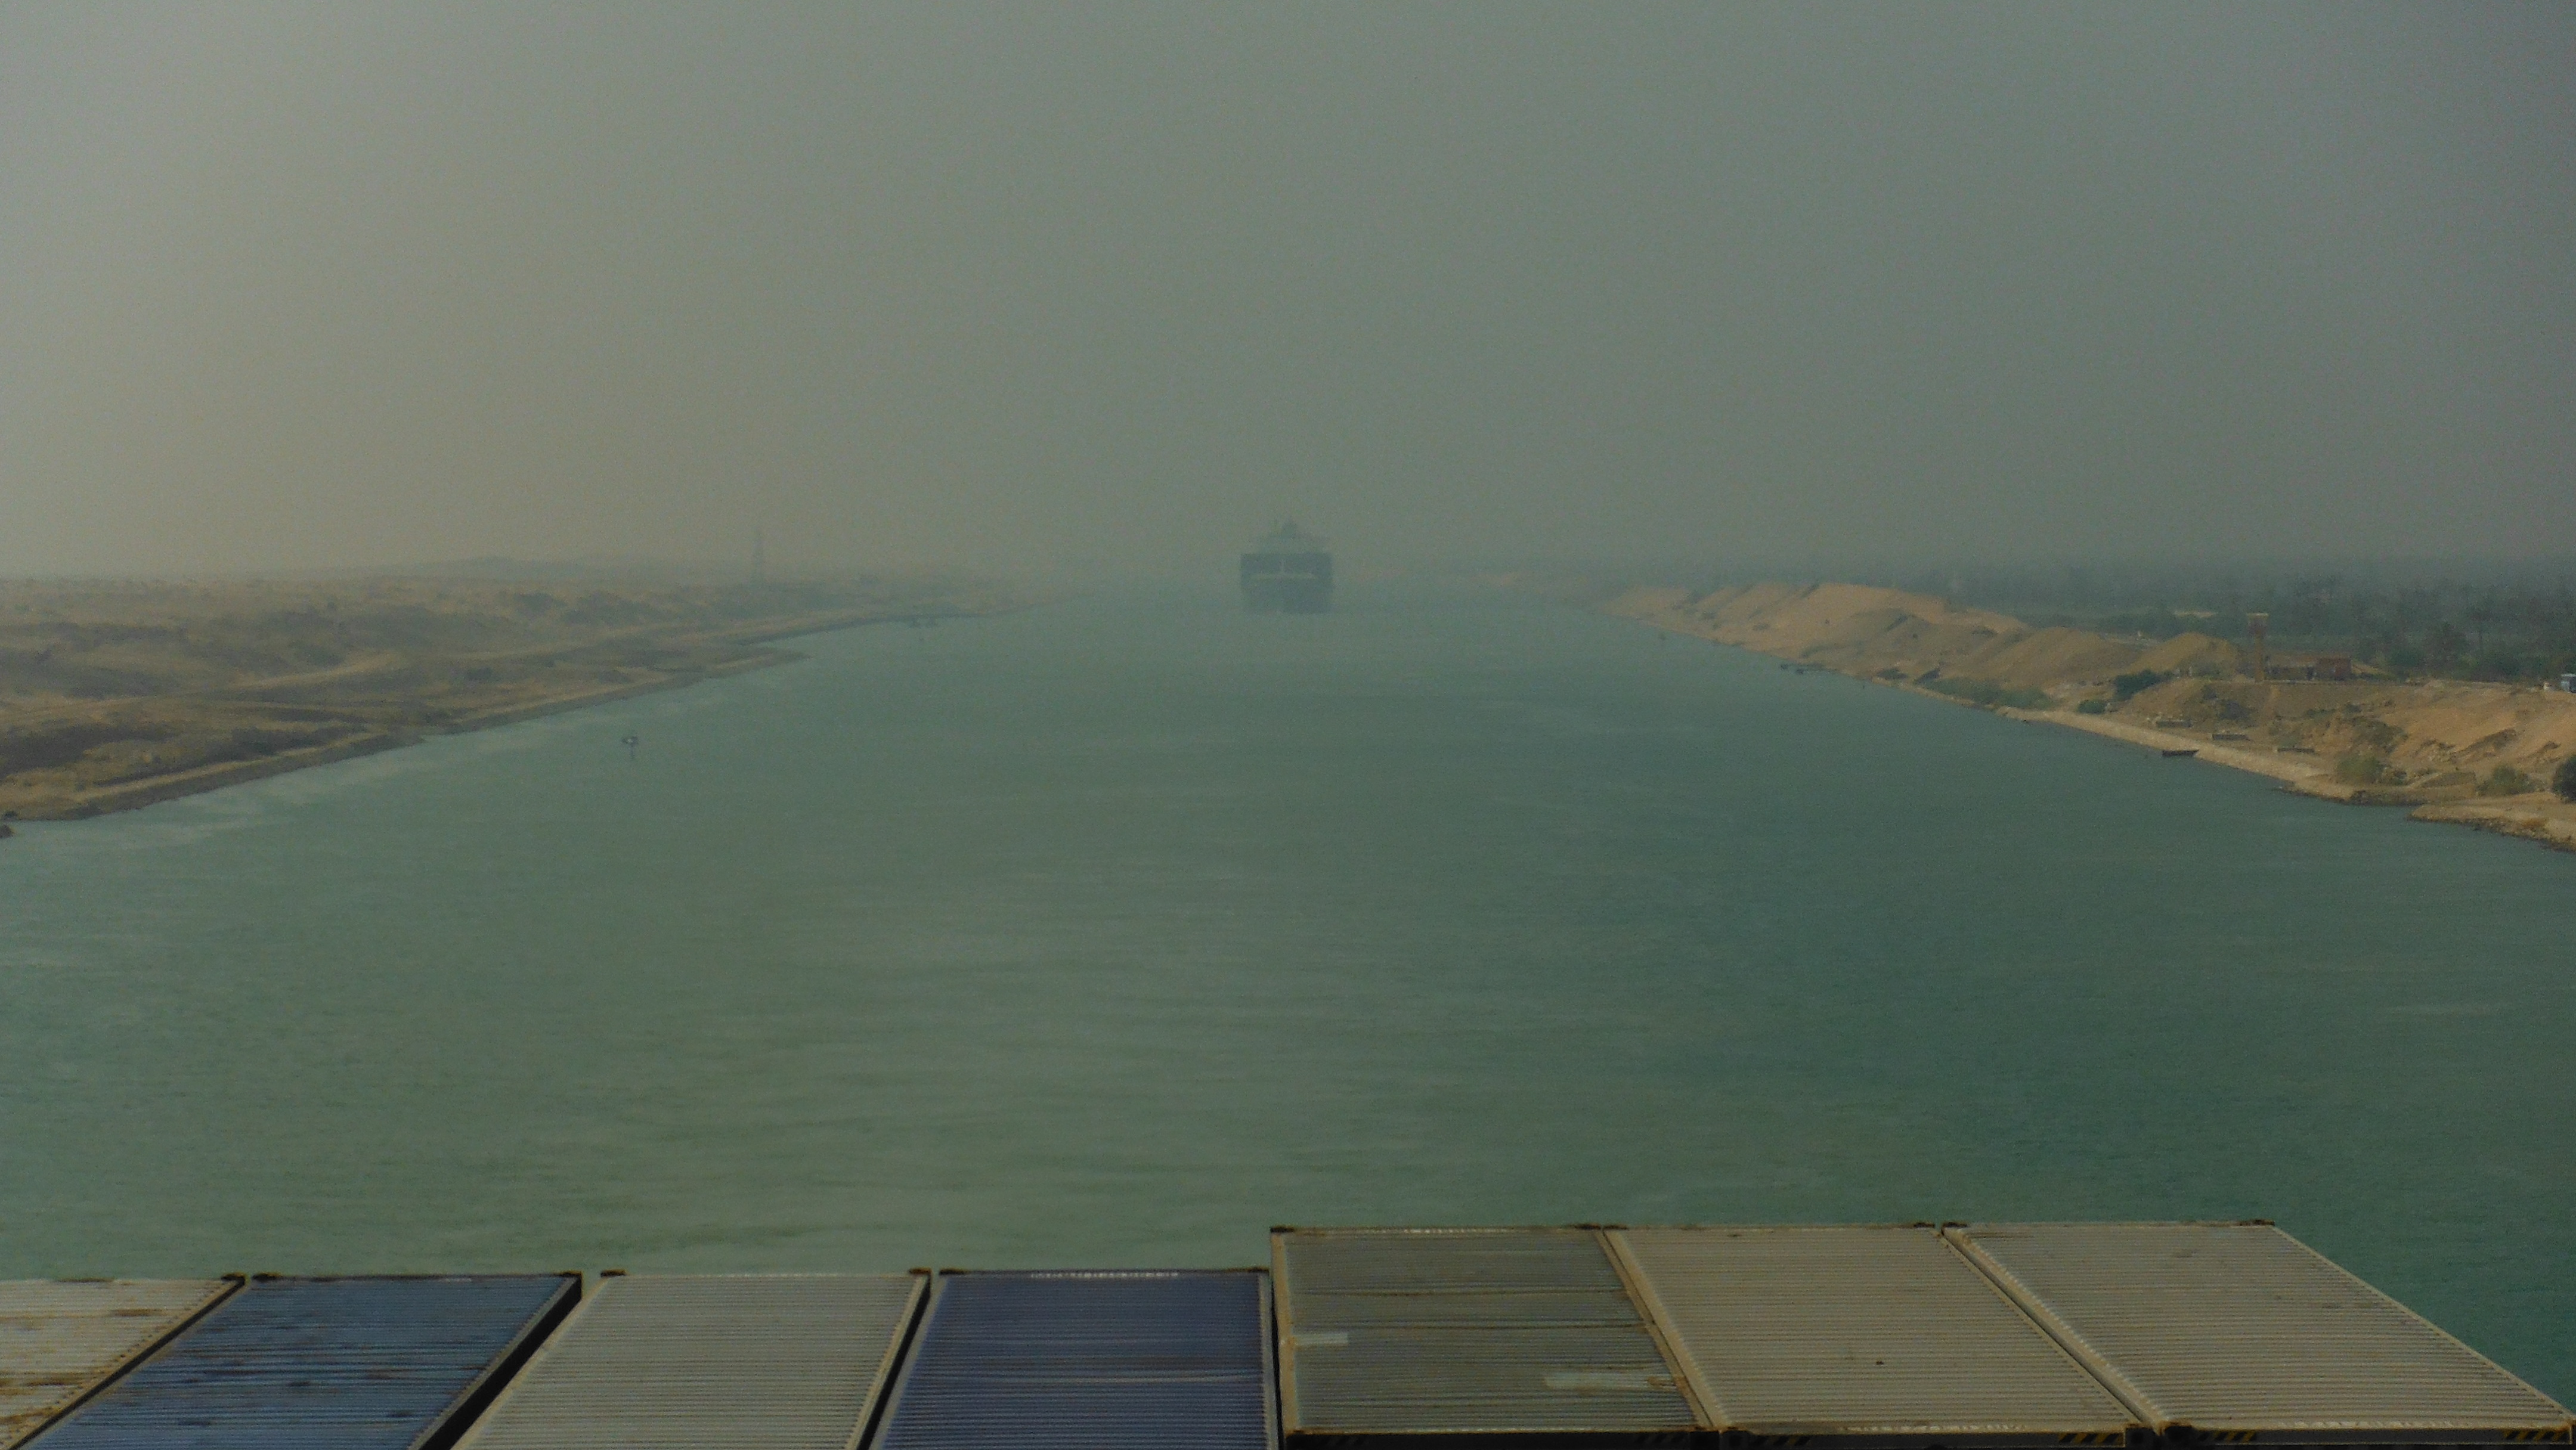 Transiting the Suez Canal by MIDN Guettelin